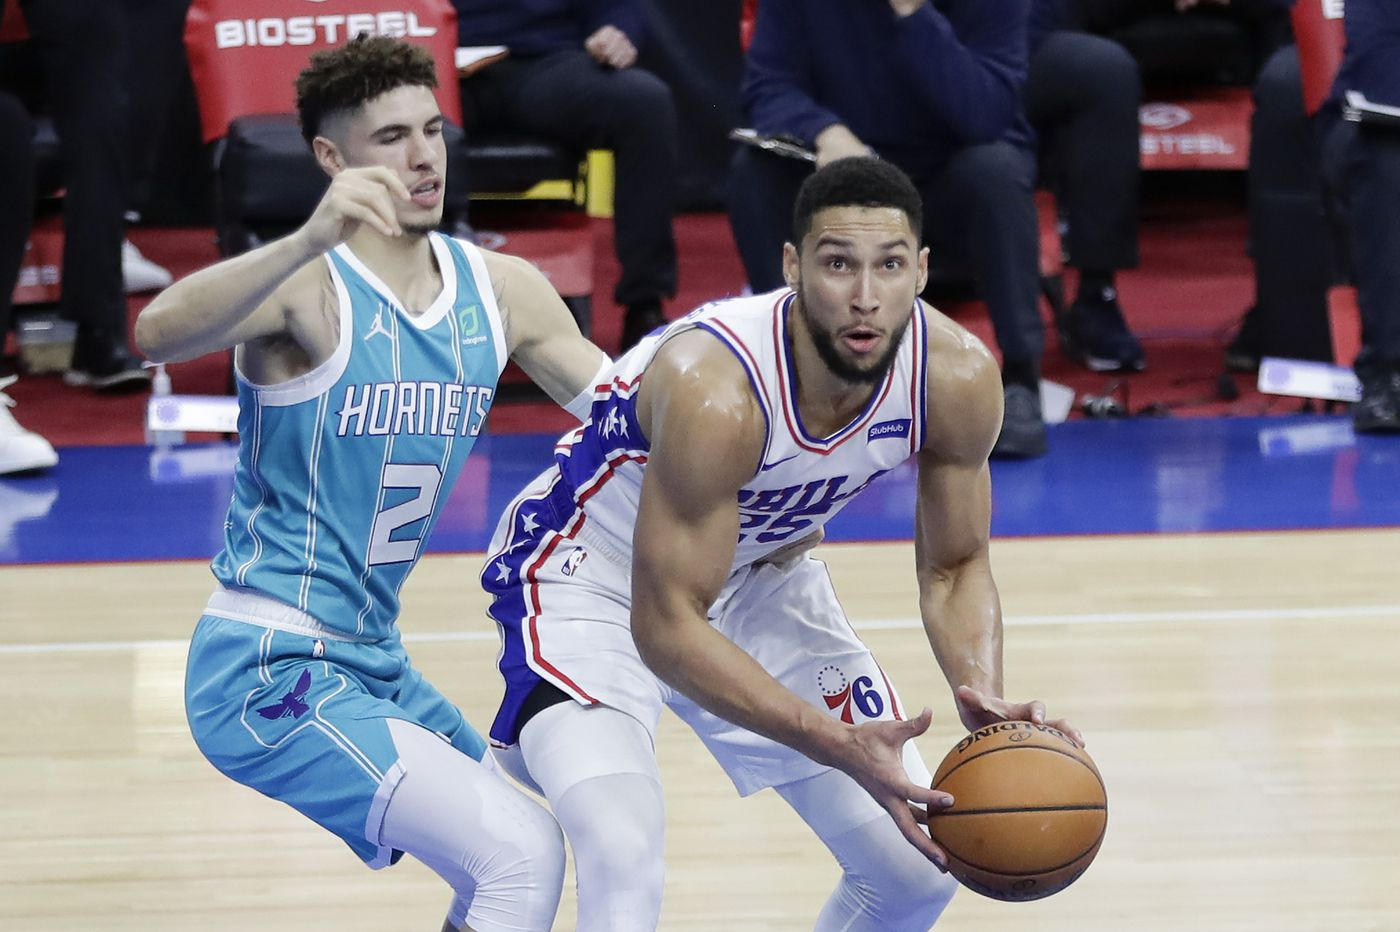 Sixers' fast pace, unselfish play, has led to many wide open shots